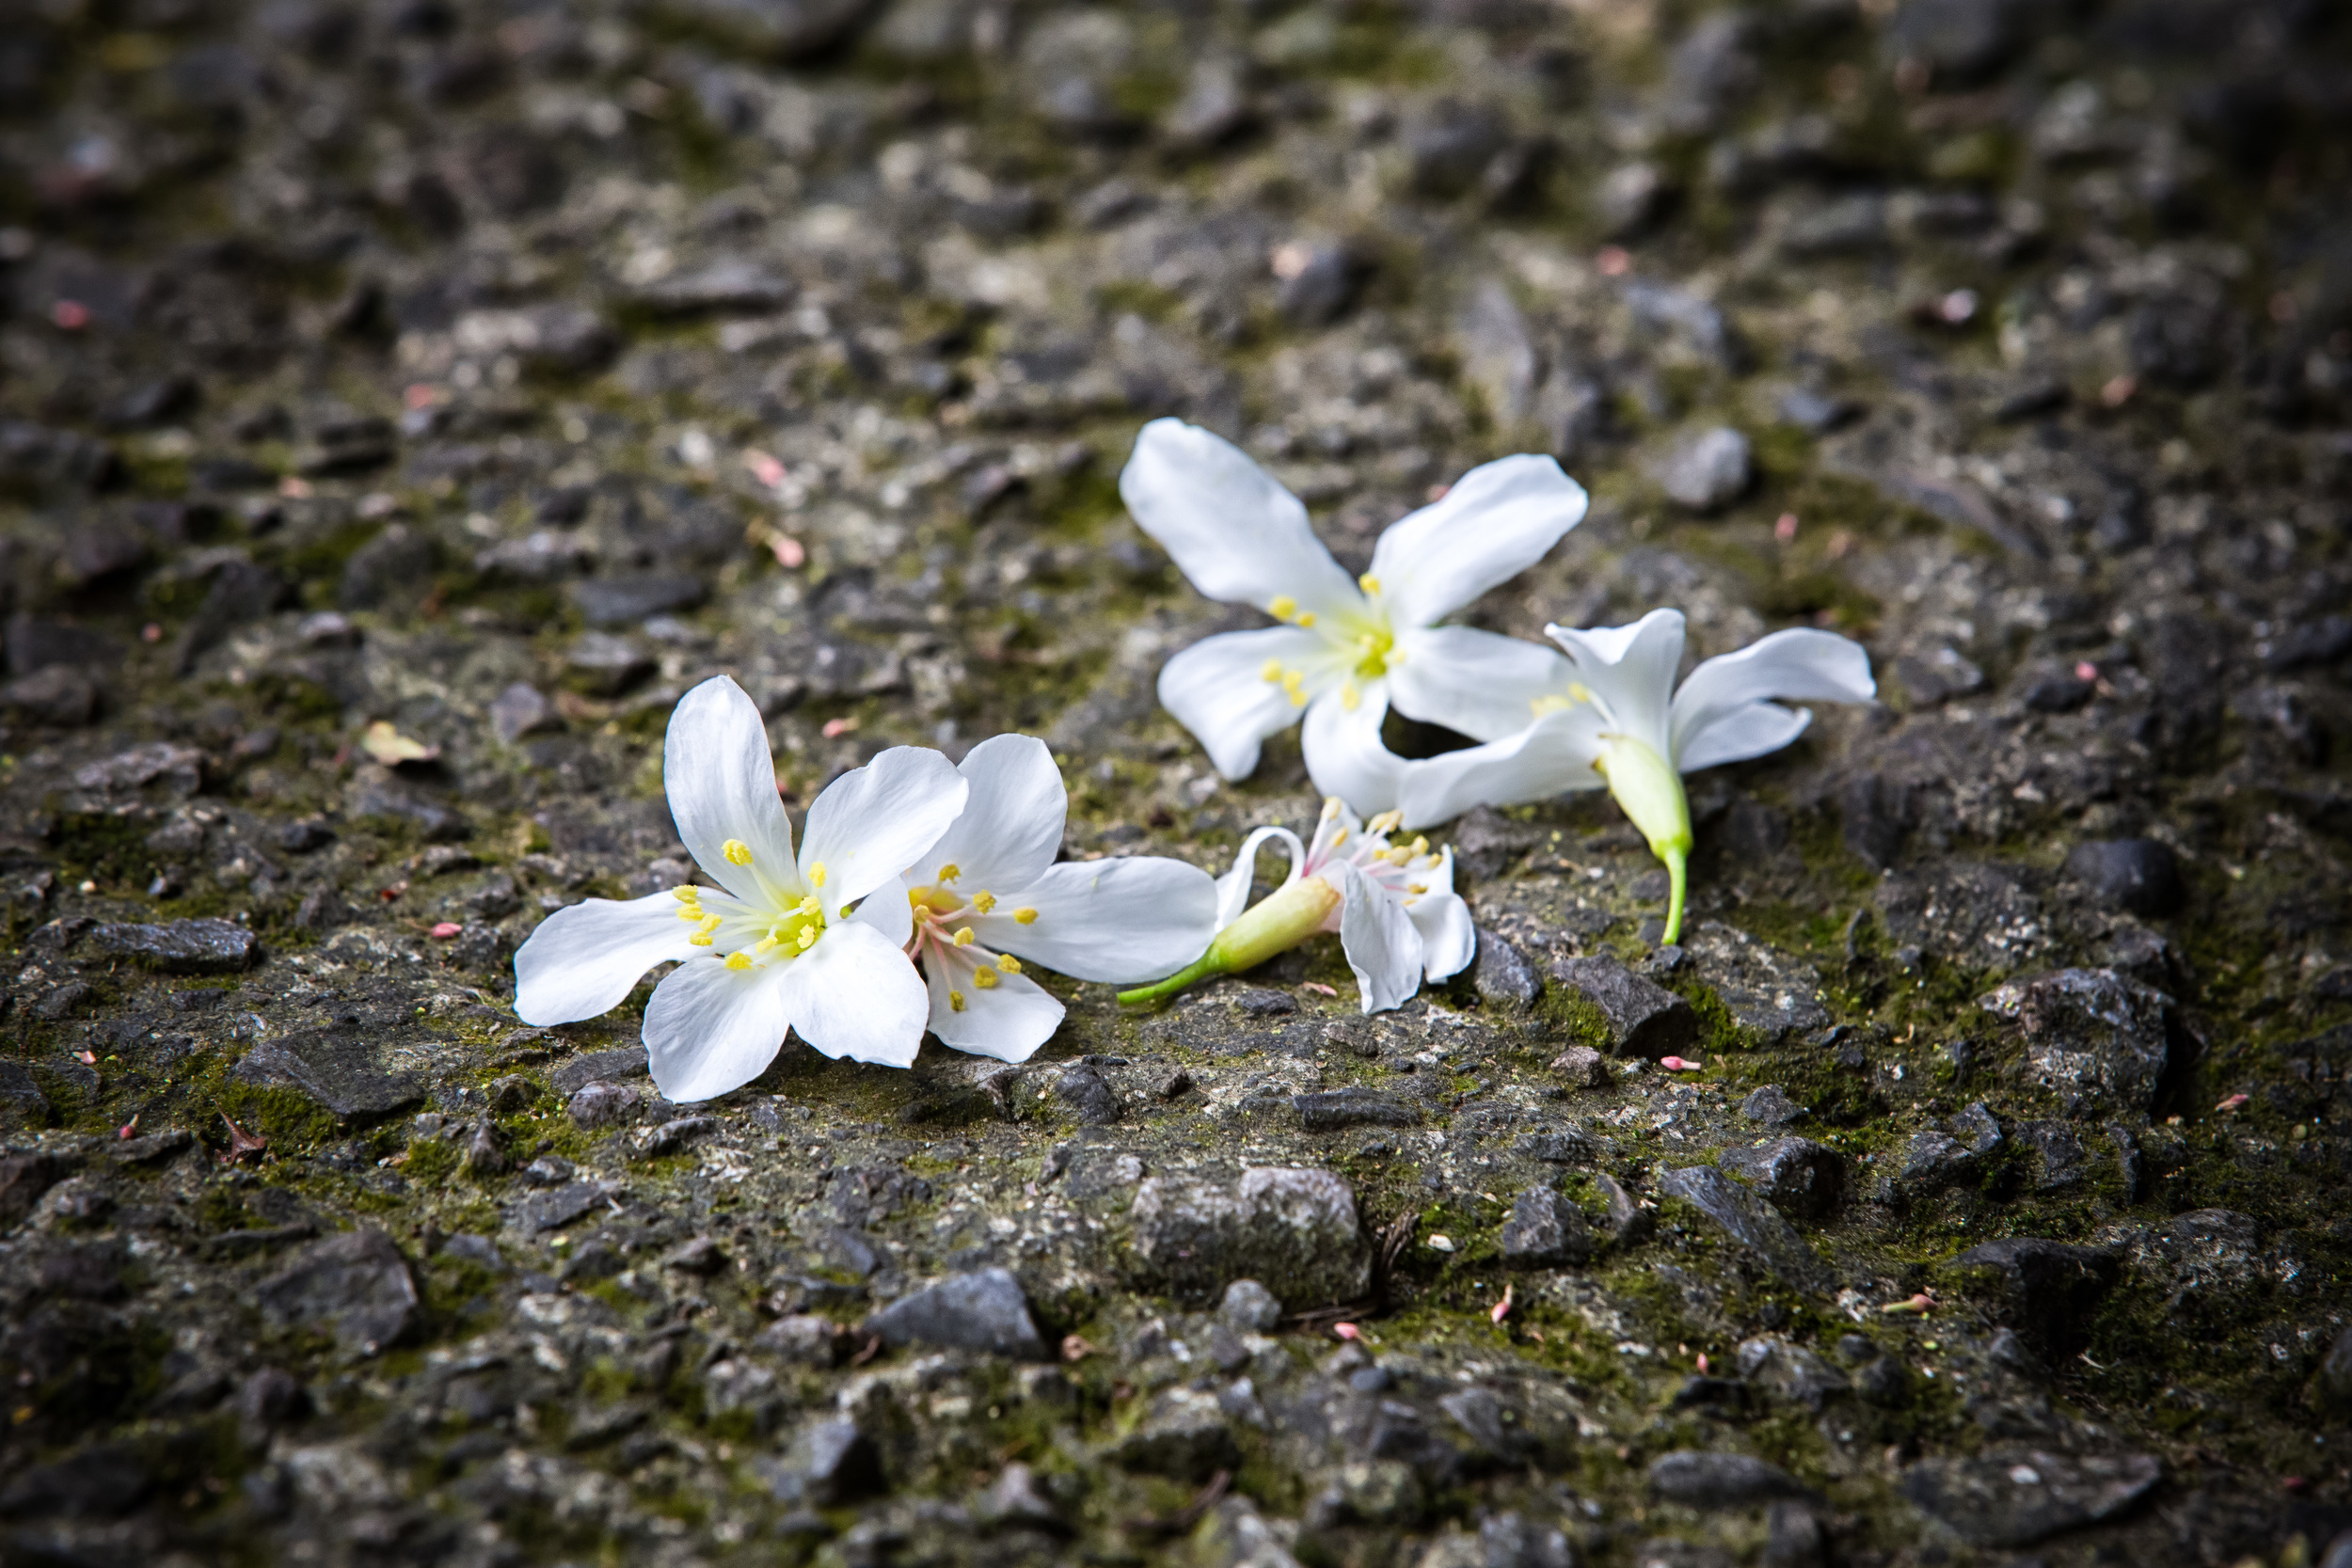 Tung Blossoms that have fallen on a hiking trail.